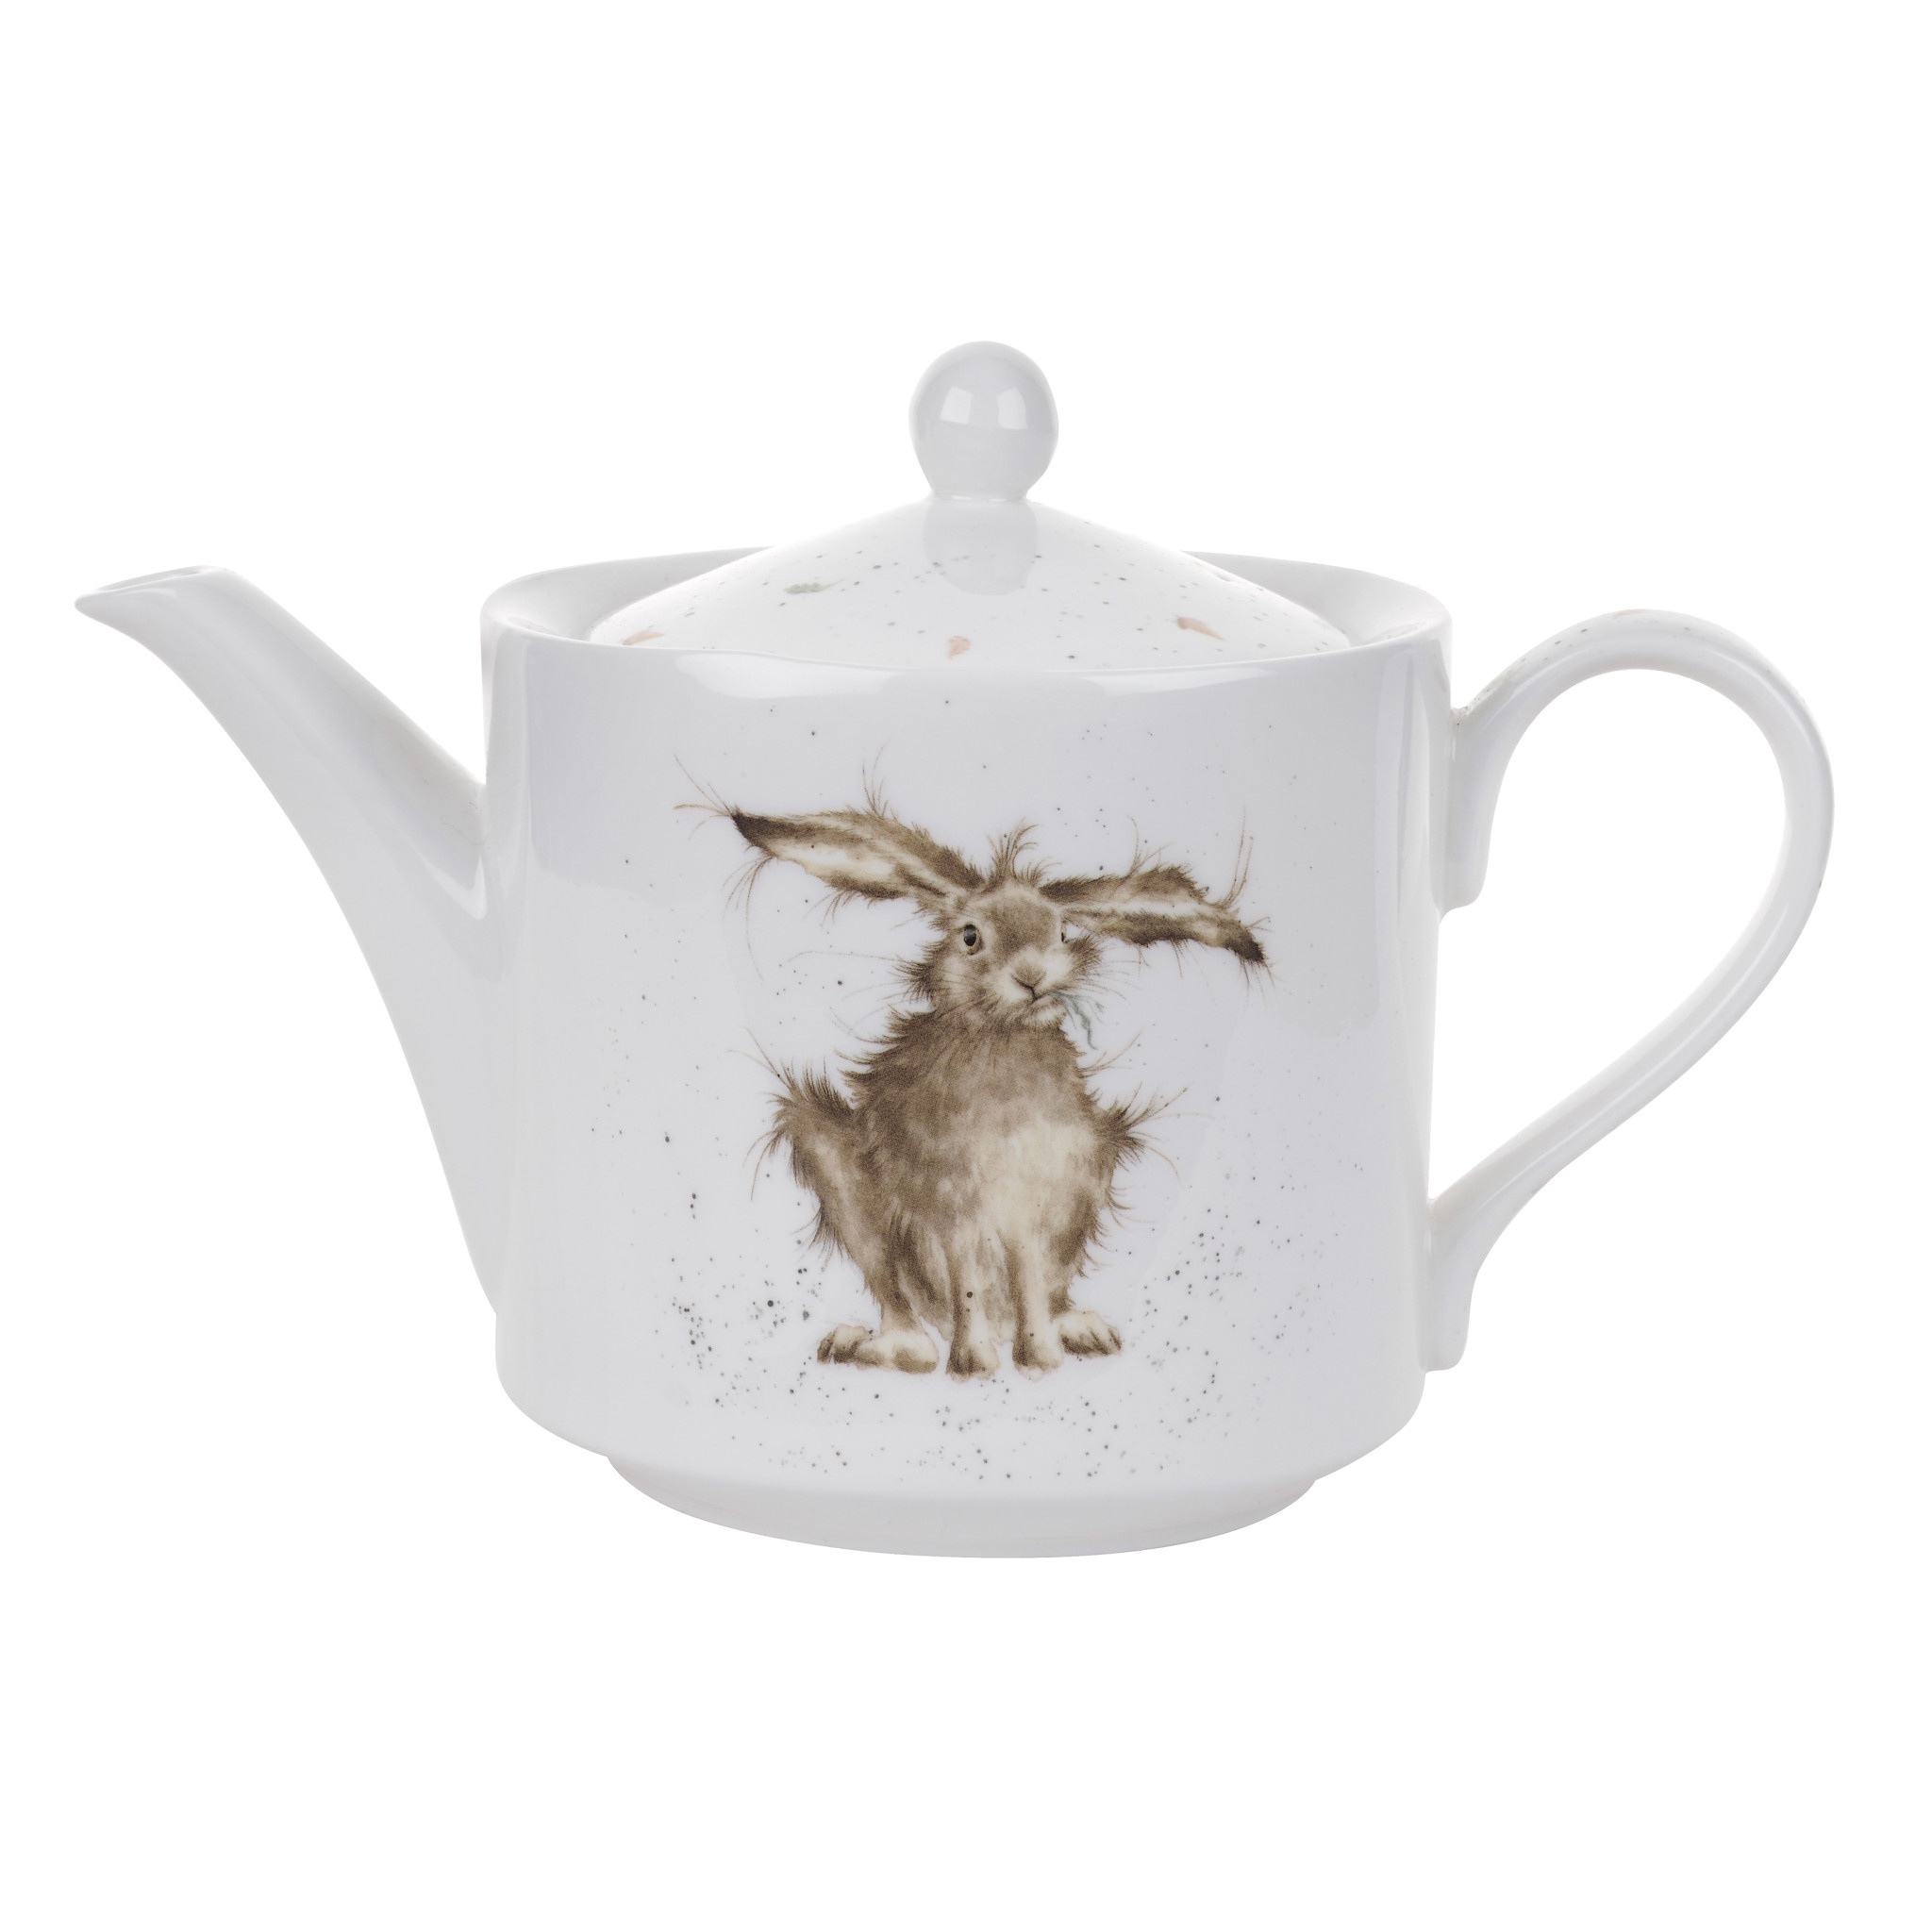 Wrendale Designs 'Hare-Brained' Teapot